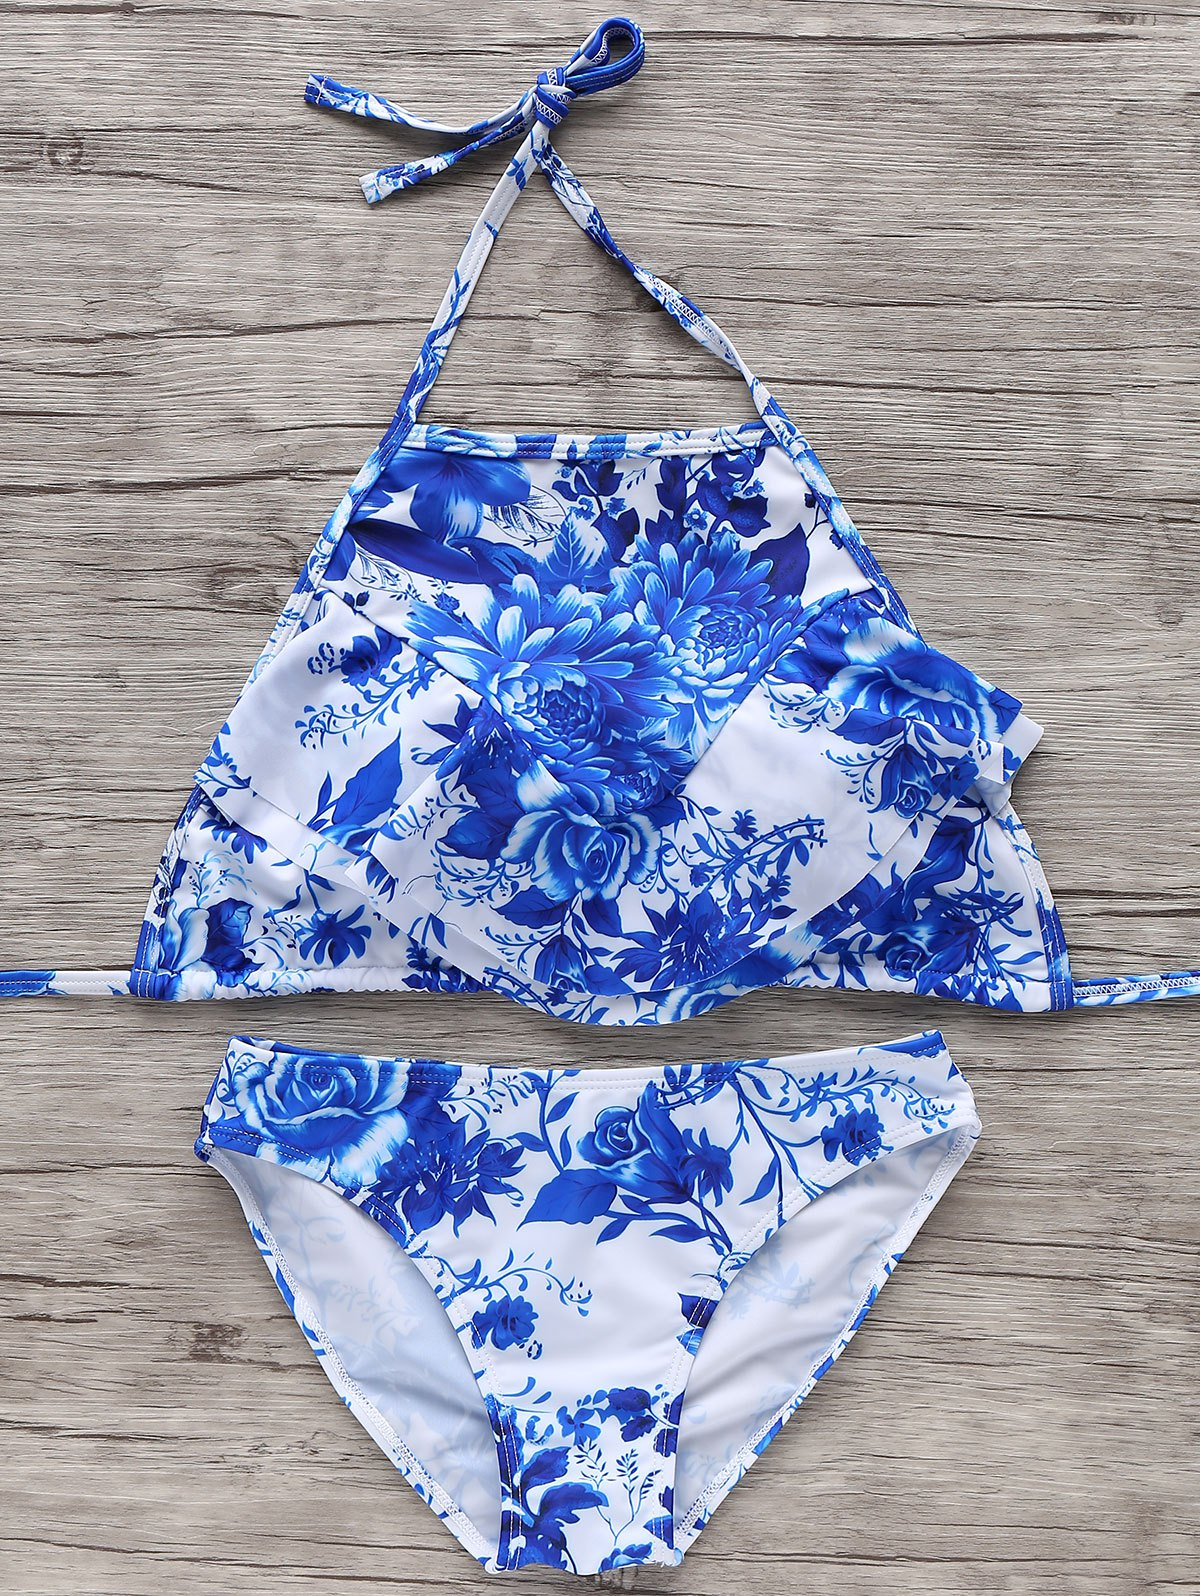 Halter Neck Blue and White Bikini Set